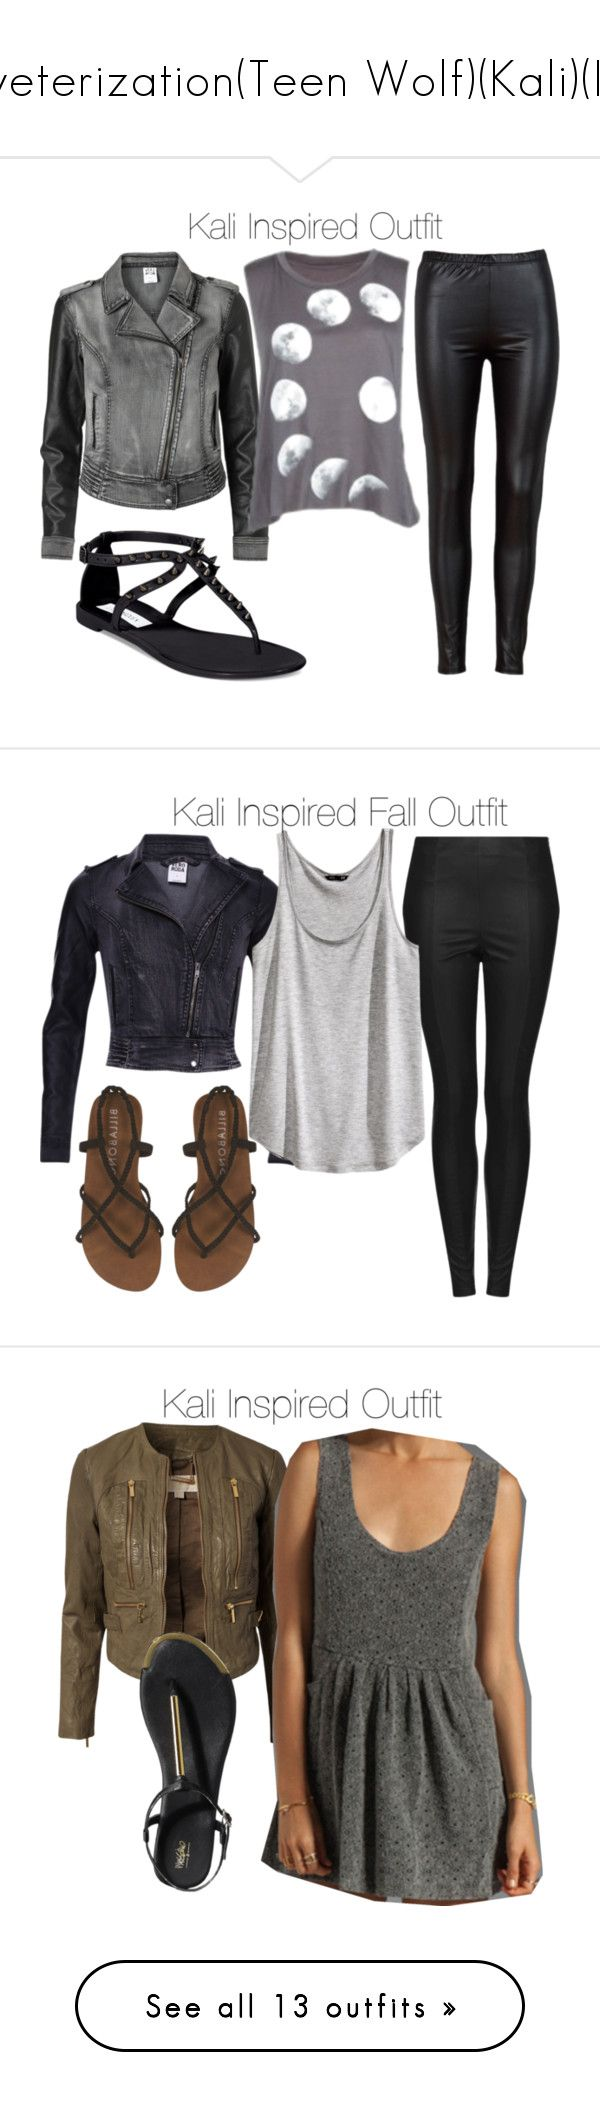 """veterization(Teen Wolf)(Kali)(I)"" by nessiecullen2286 ❤ liked on Polyvore featuring Vero Moda, Steve Madden, Topshop, H&M, Billabong, MICHAEL Michael Kors, Evil Twin, Mossimo, Hudson and Nails Inc."